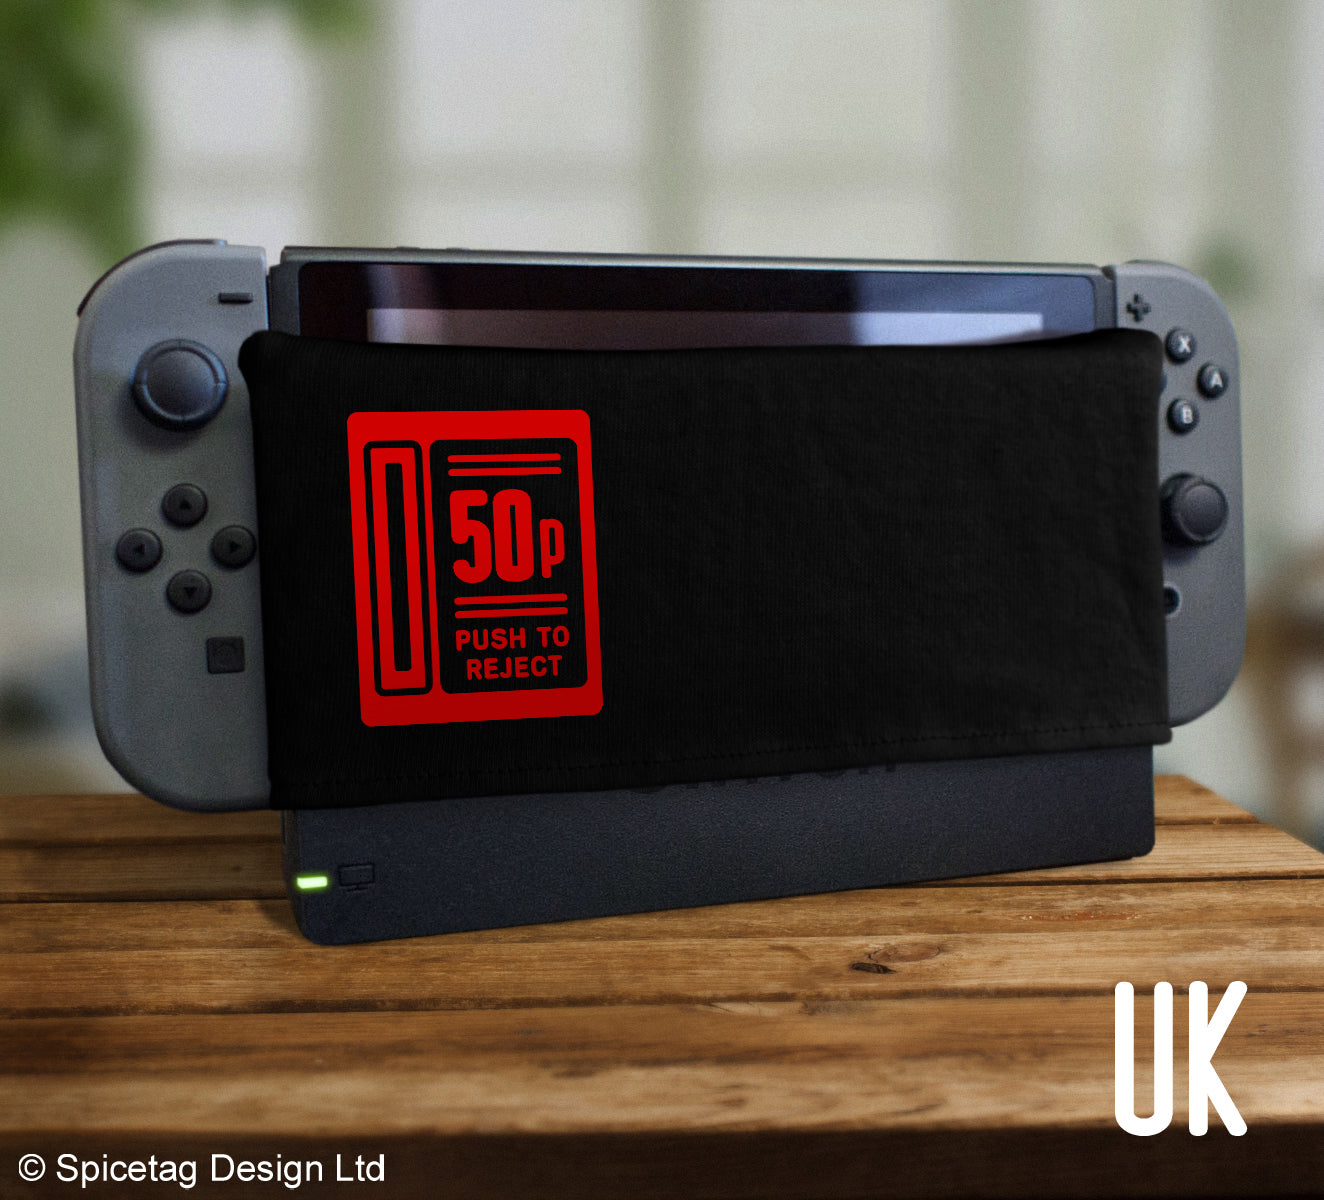 Protect your Nintendo Switch screen by getting scratched by its dock with our DOCK SOCK protectors!